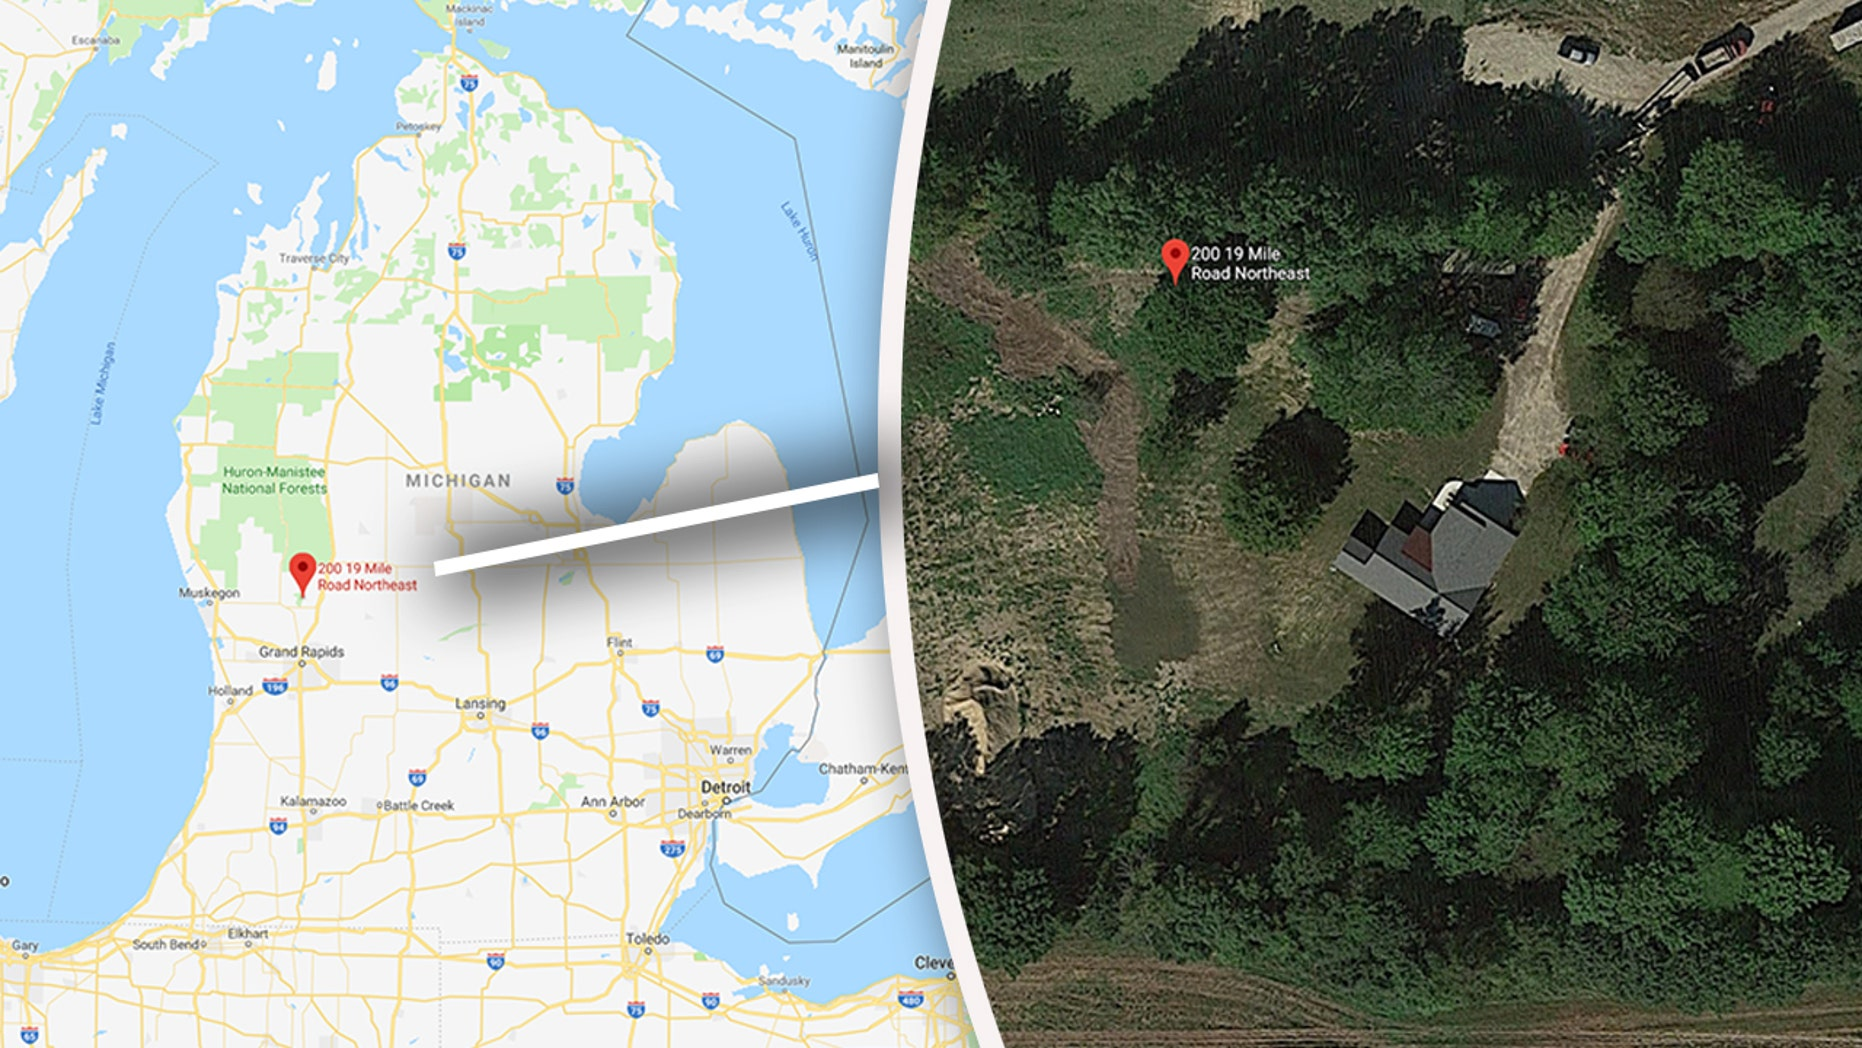 Four people were killed in an apparent shooting in Kent County, Michigan on Monday.